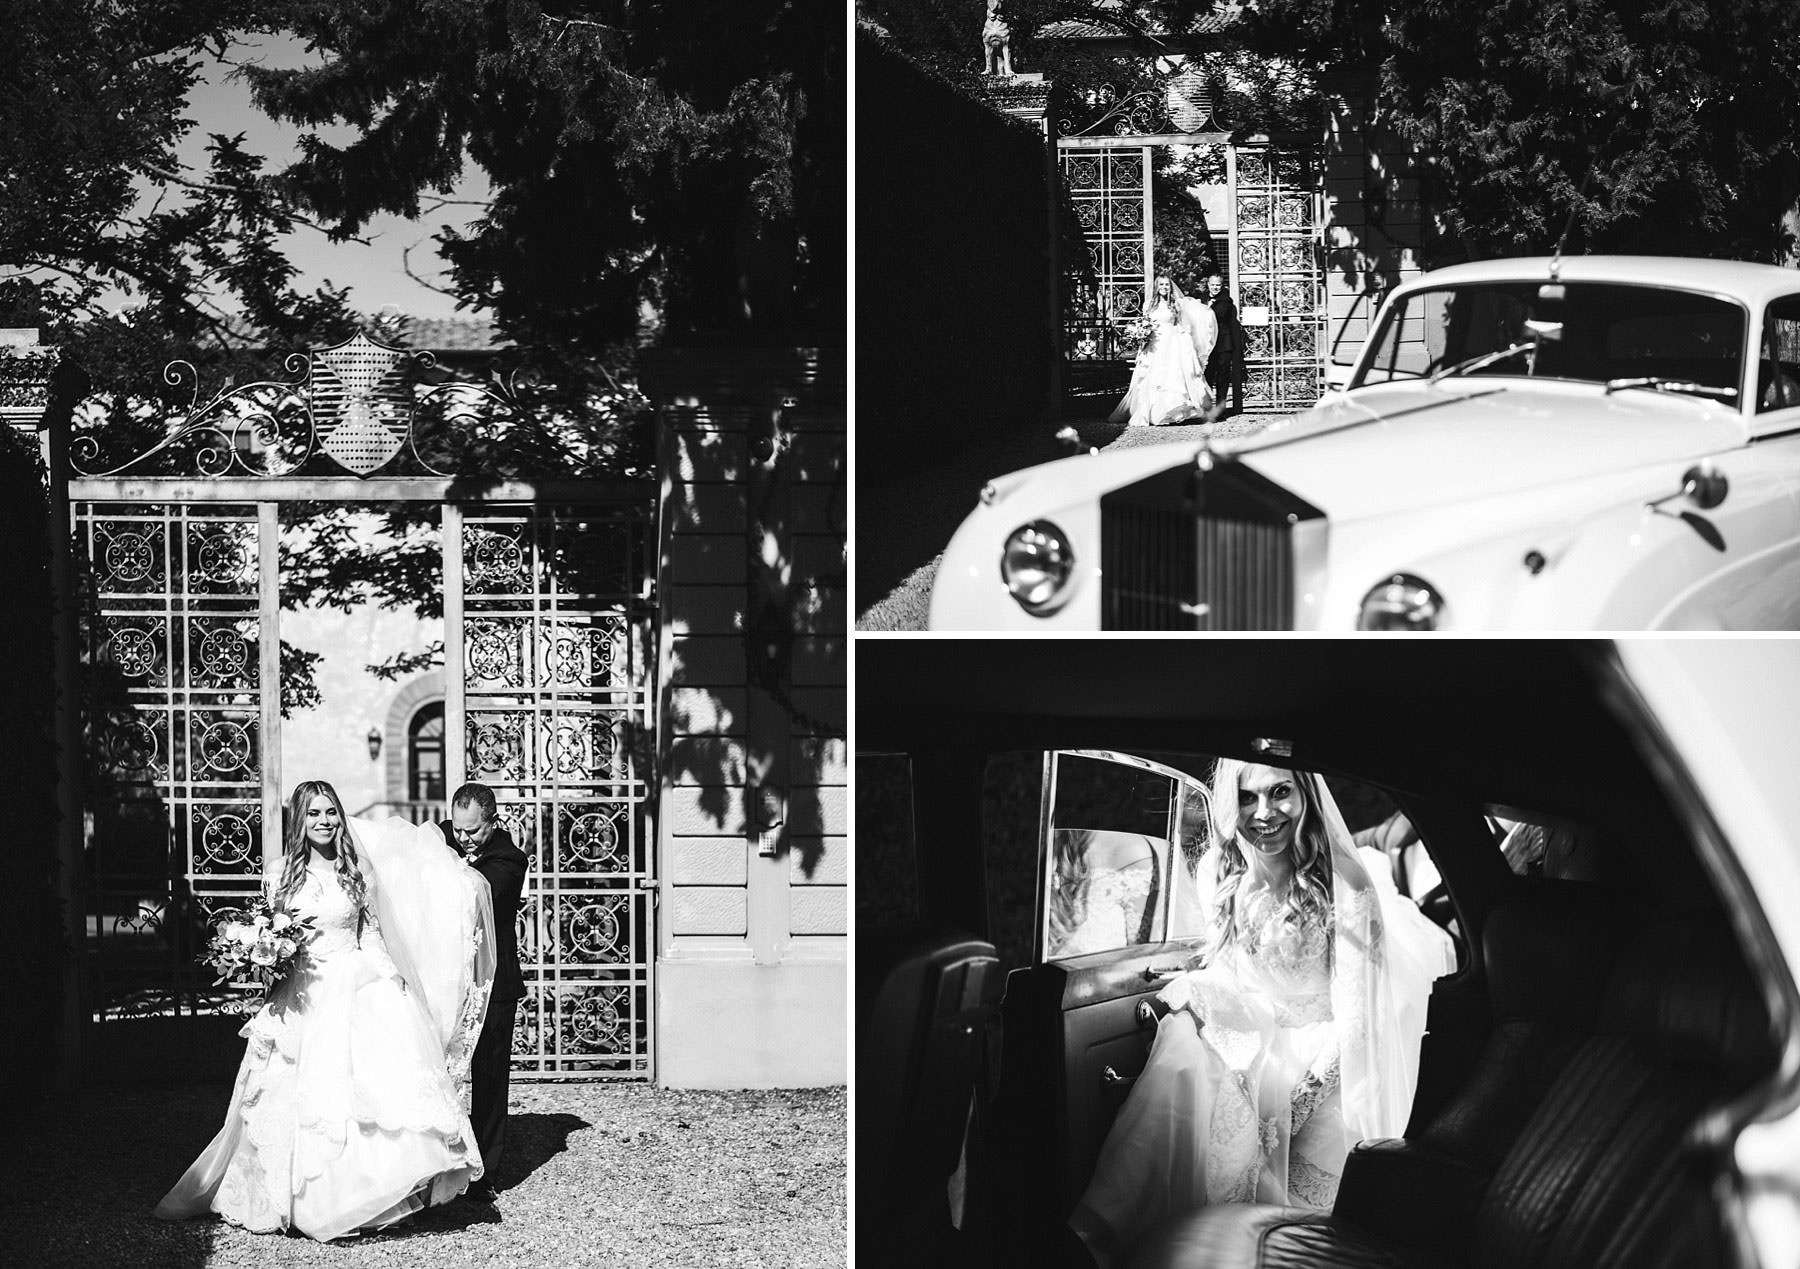 Bride and father leave Villa Mangiacane with Rolls Royce vintage car for the Church